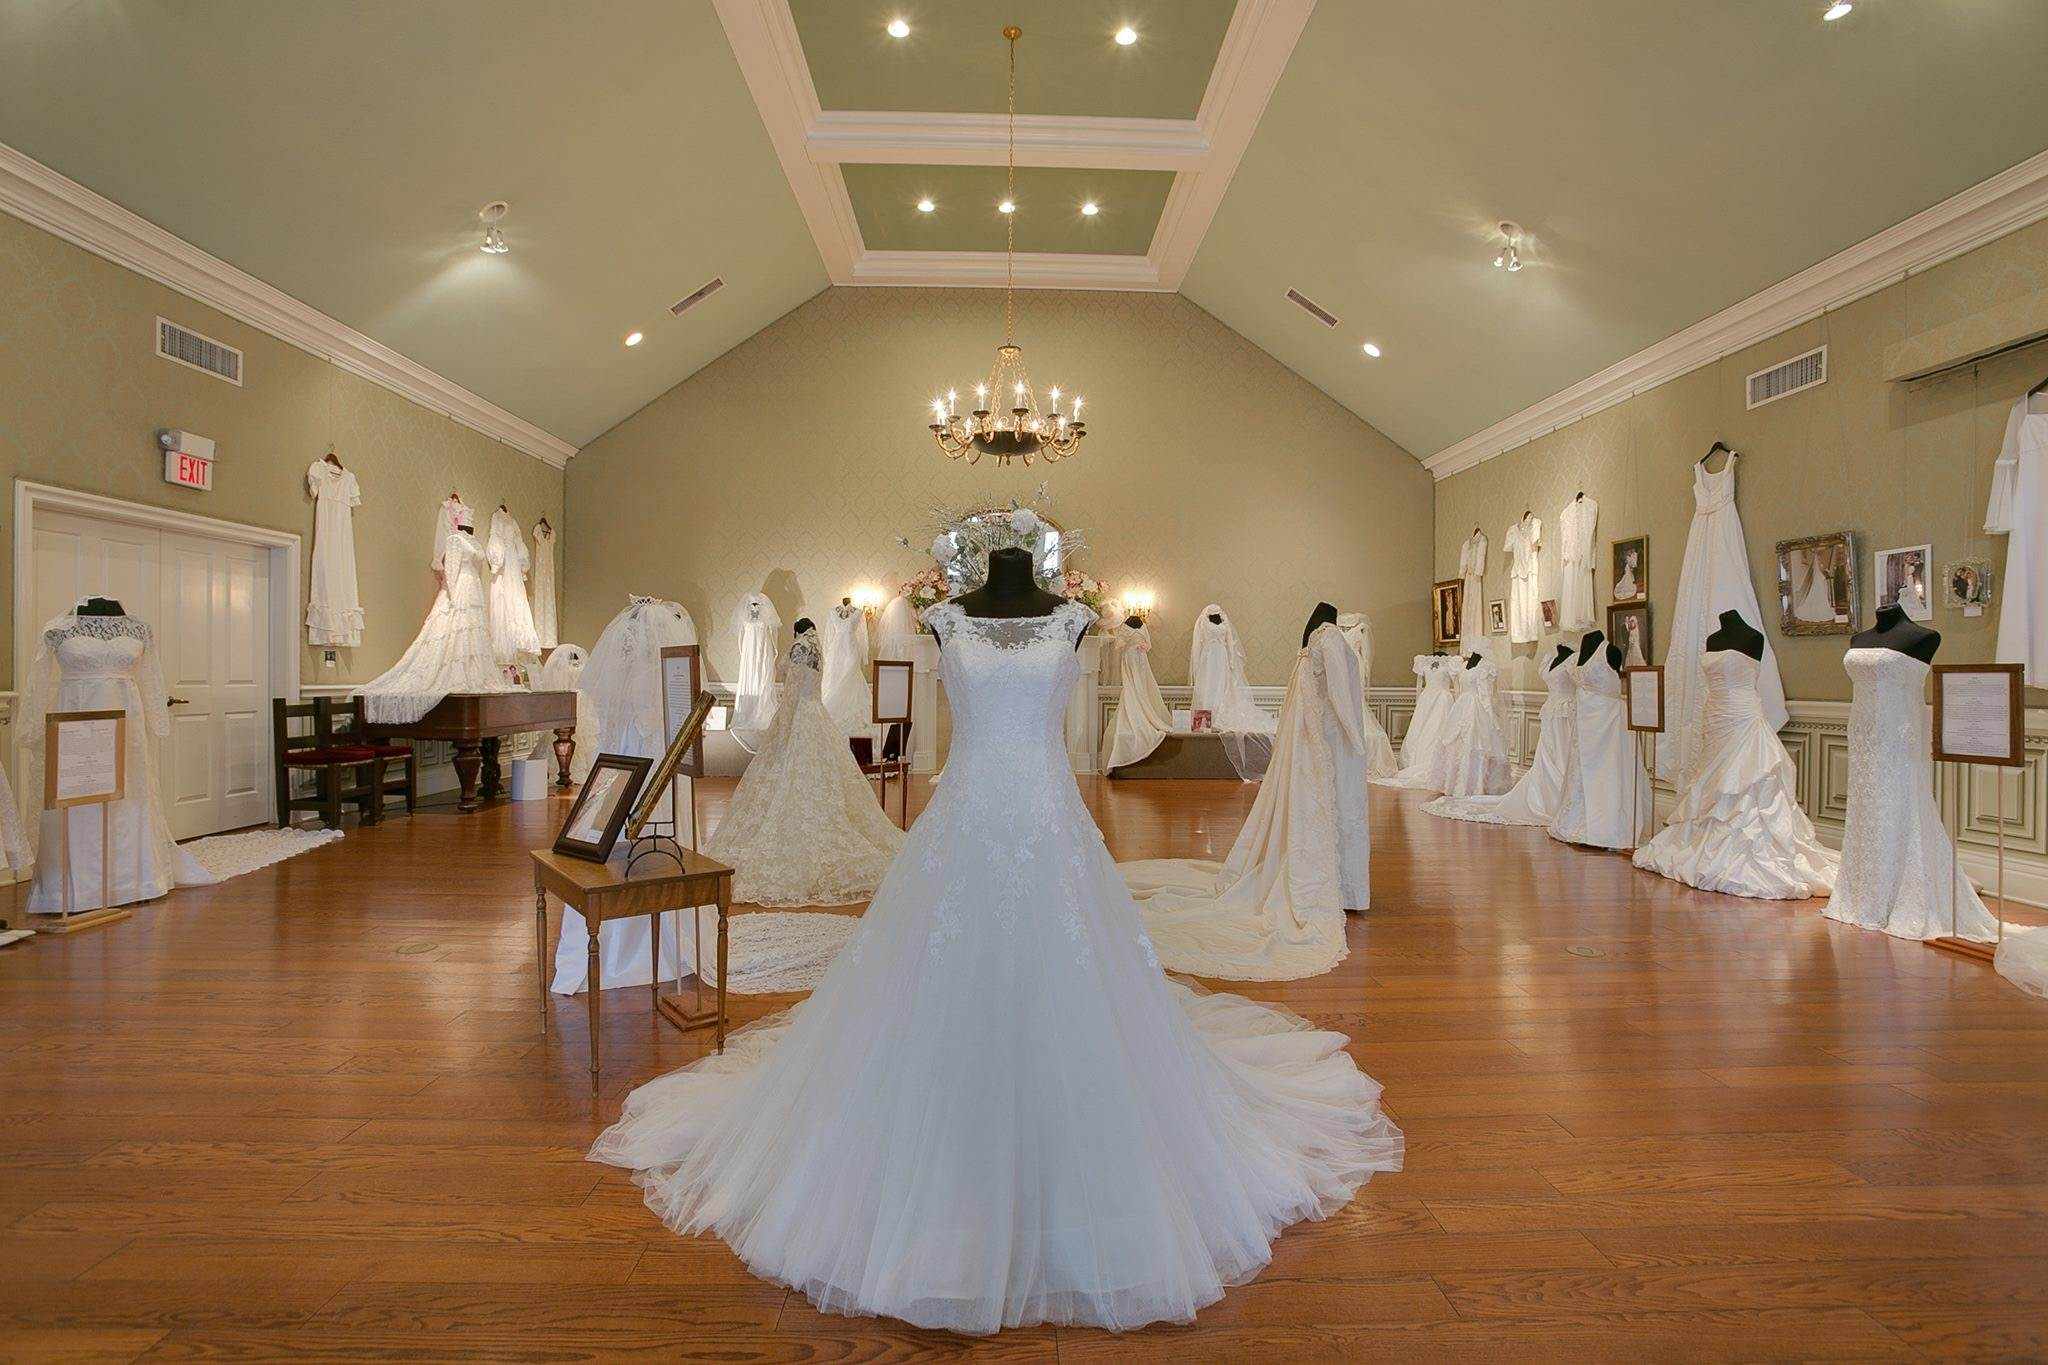 10th Anniversary of Wedding Dresses Through the Decades Exhibit<br>January 16-March 27